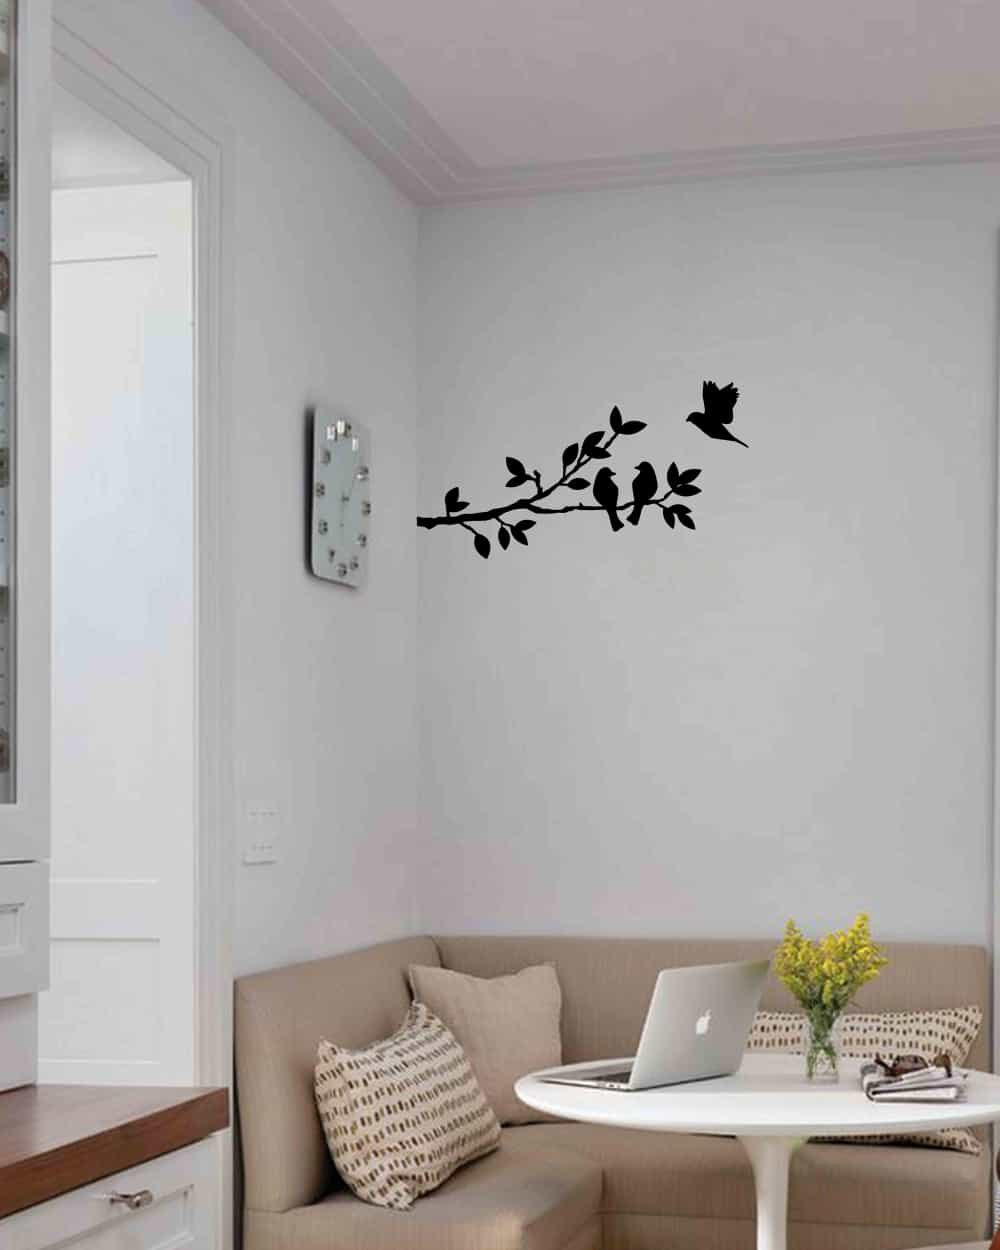 Small Branch Living room decal